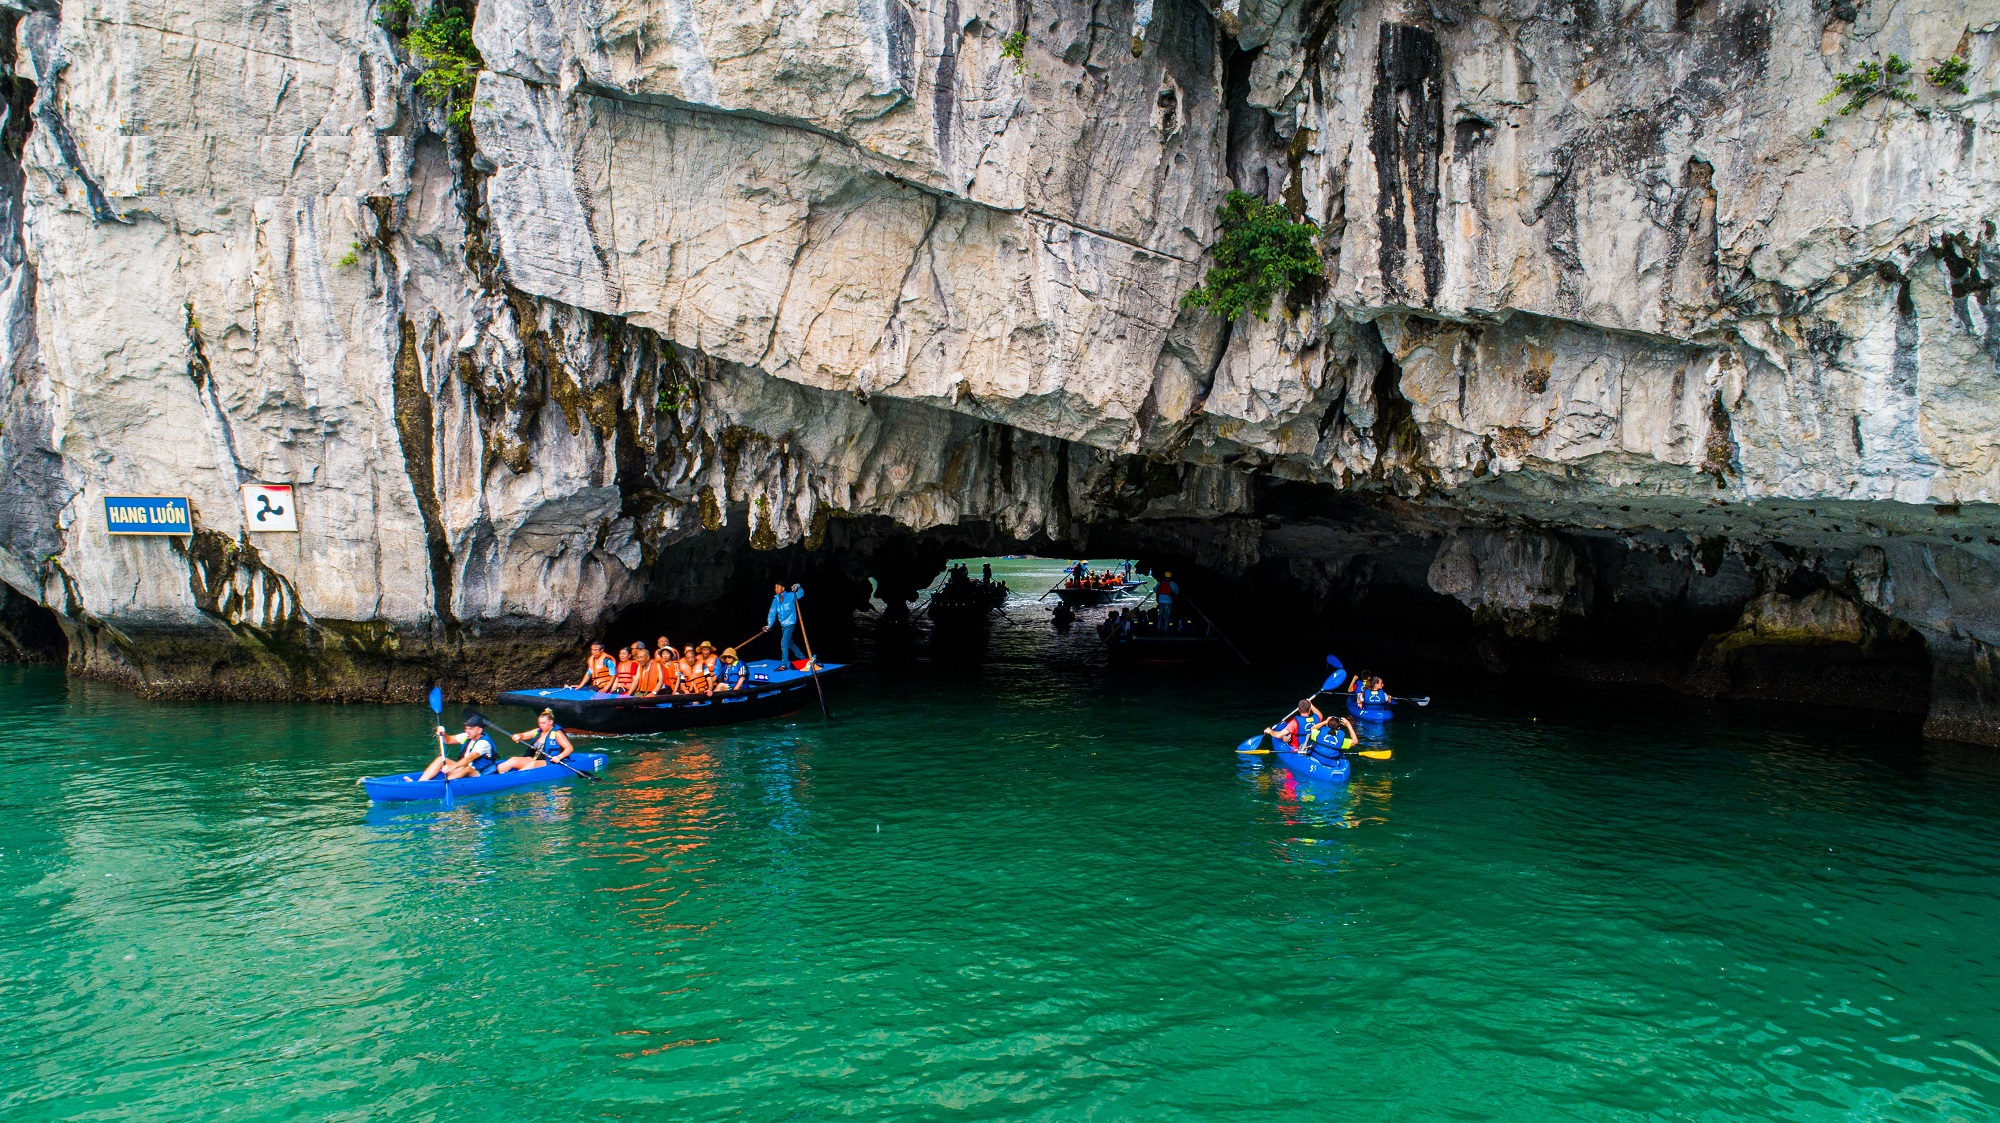 Kayaking in Luon cave Halong Bay